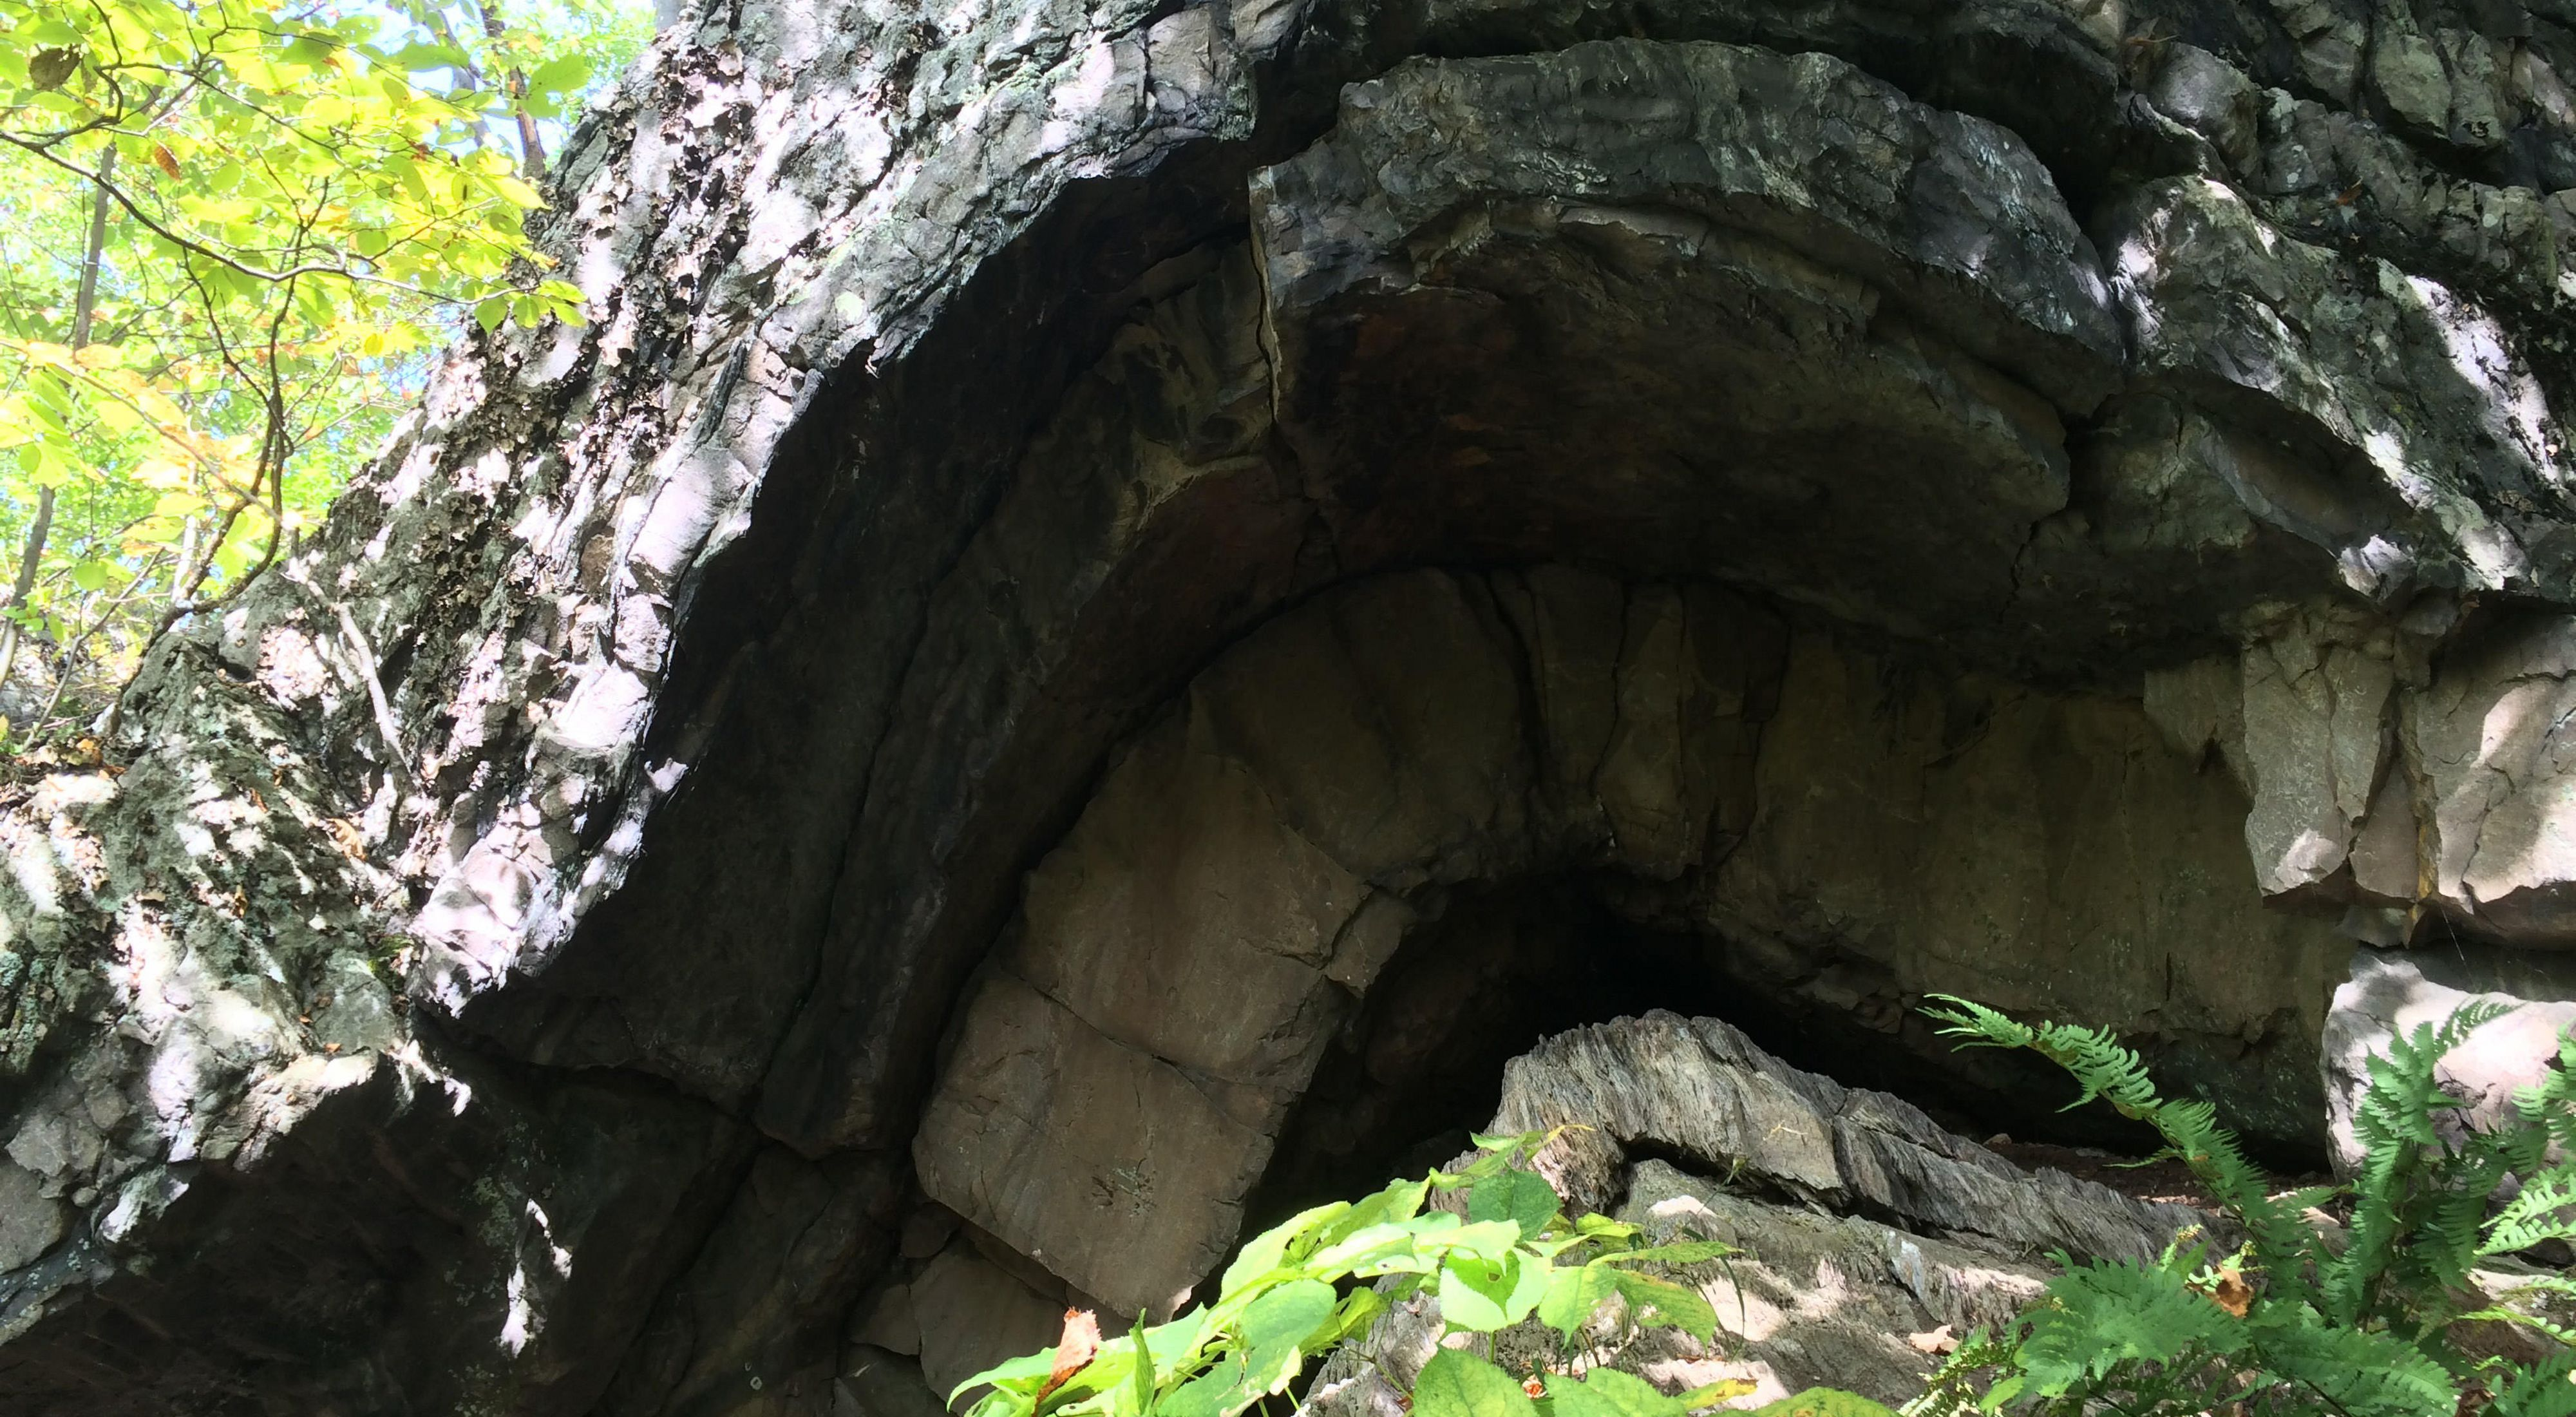 An arched rock formation leading into a cave under the arch.